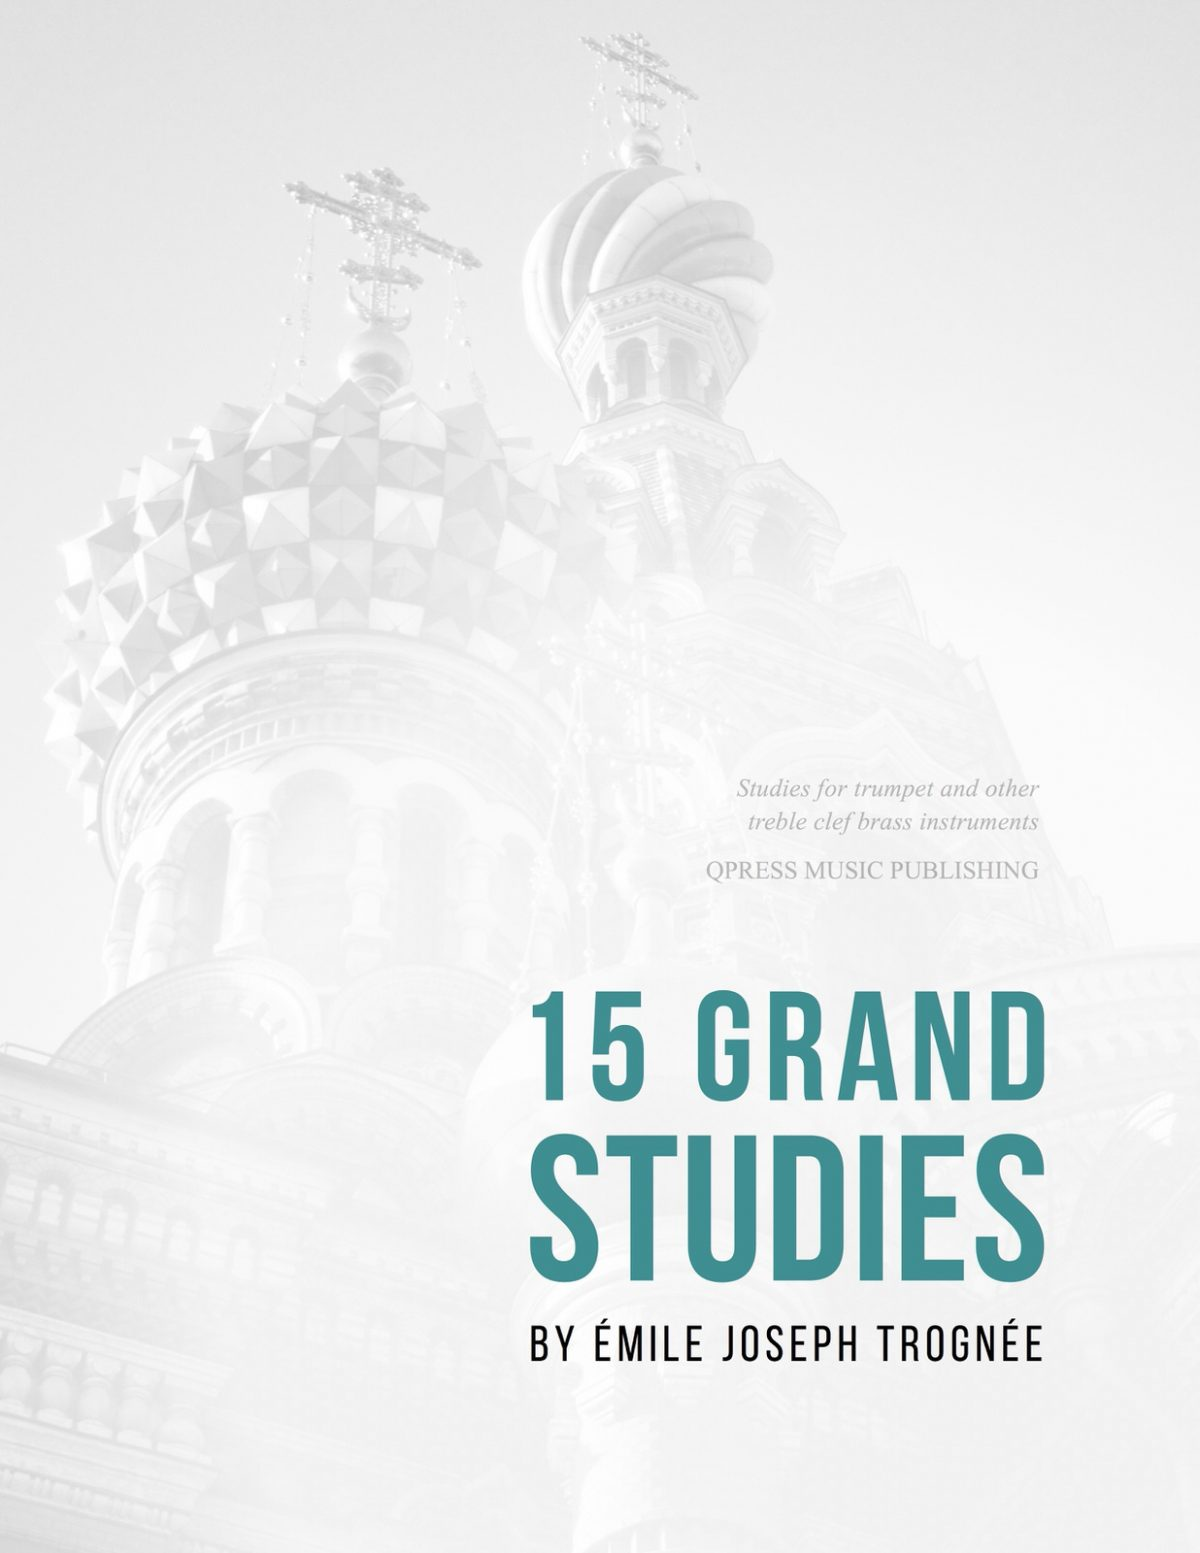 Trognee, 15 Grand Studies-p01